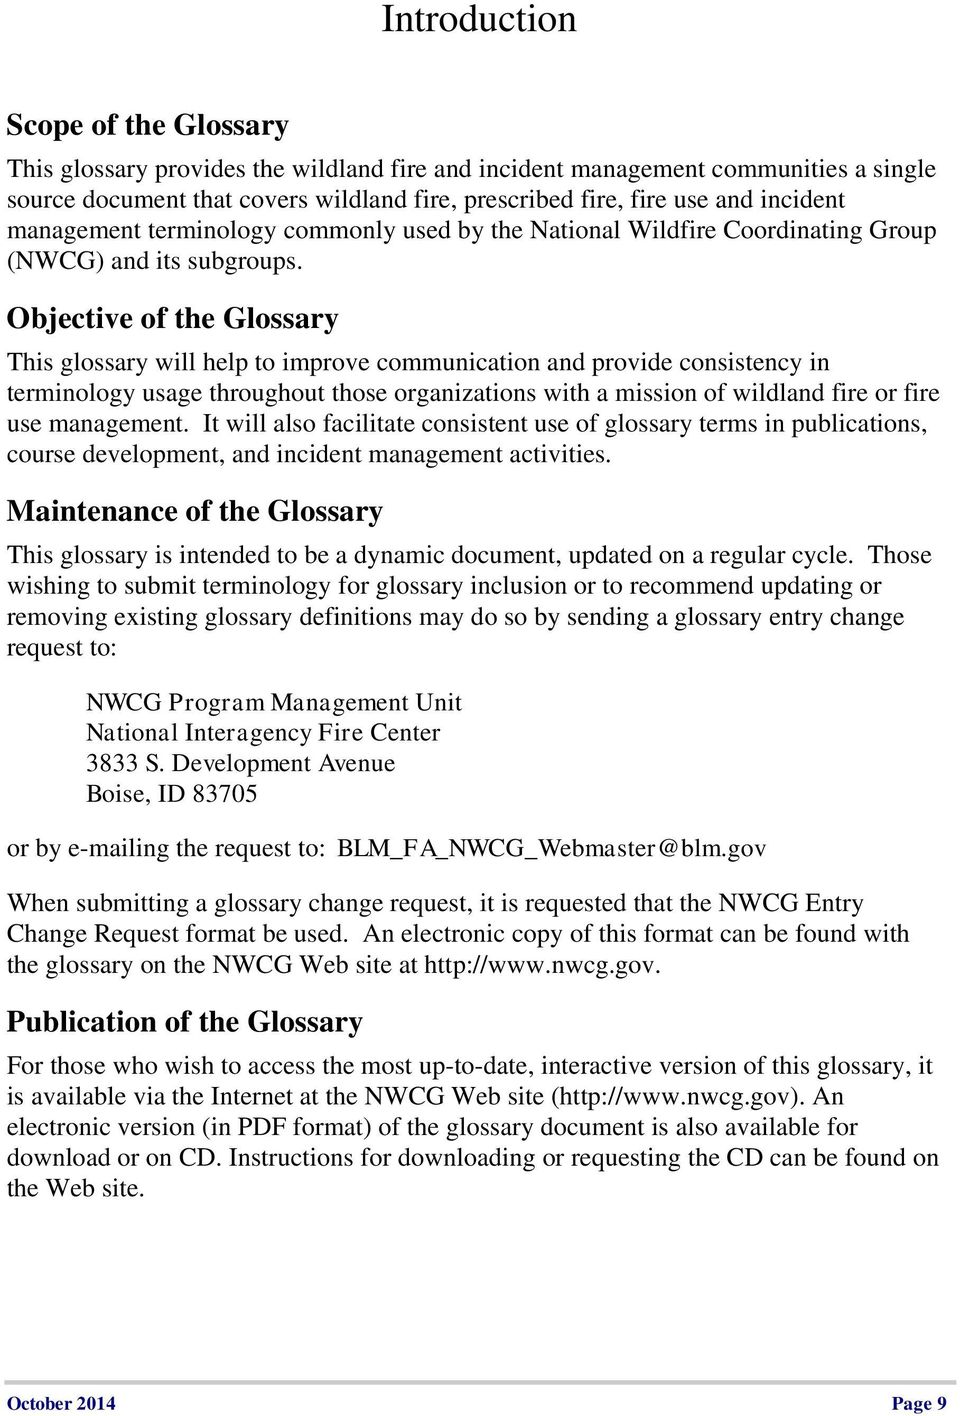 Objective of the Glossary This glossary will help to improve communication and provide consistency in terminology usage throughout those organizations with a mission of wildland fire or fire use